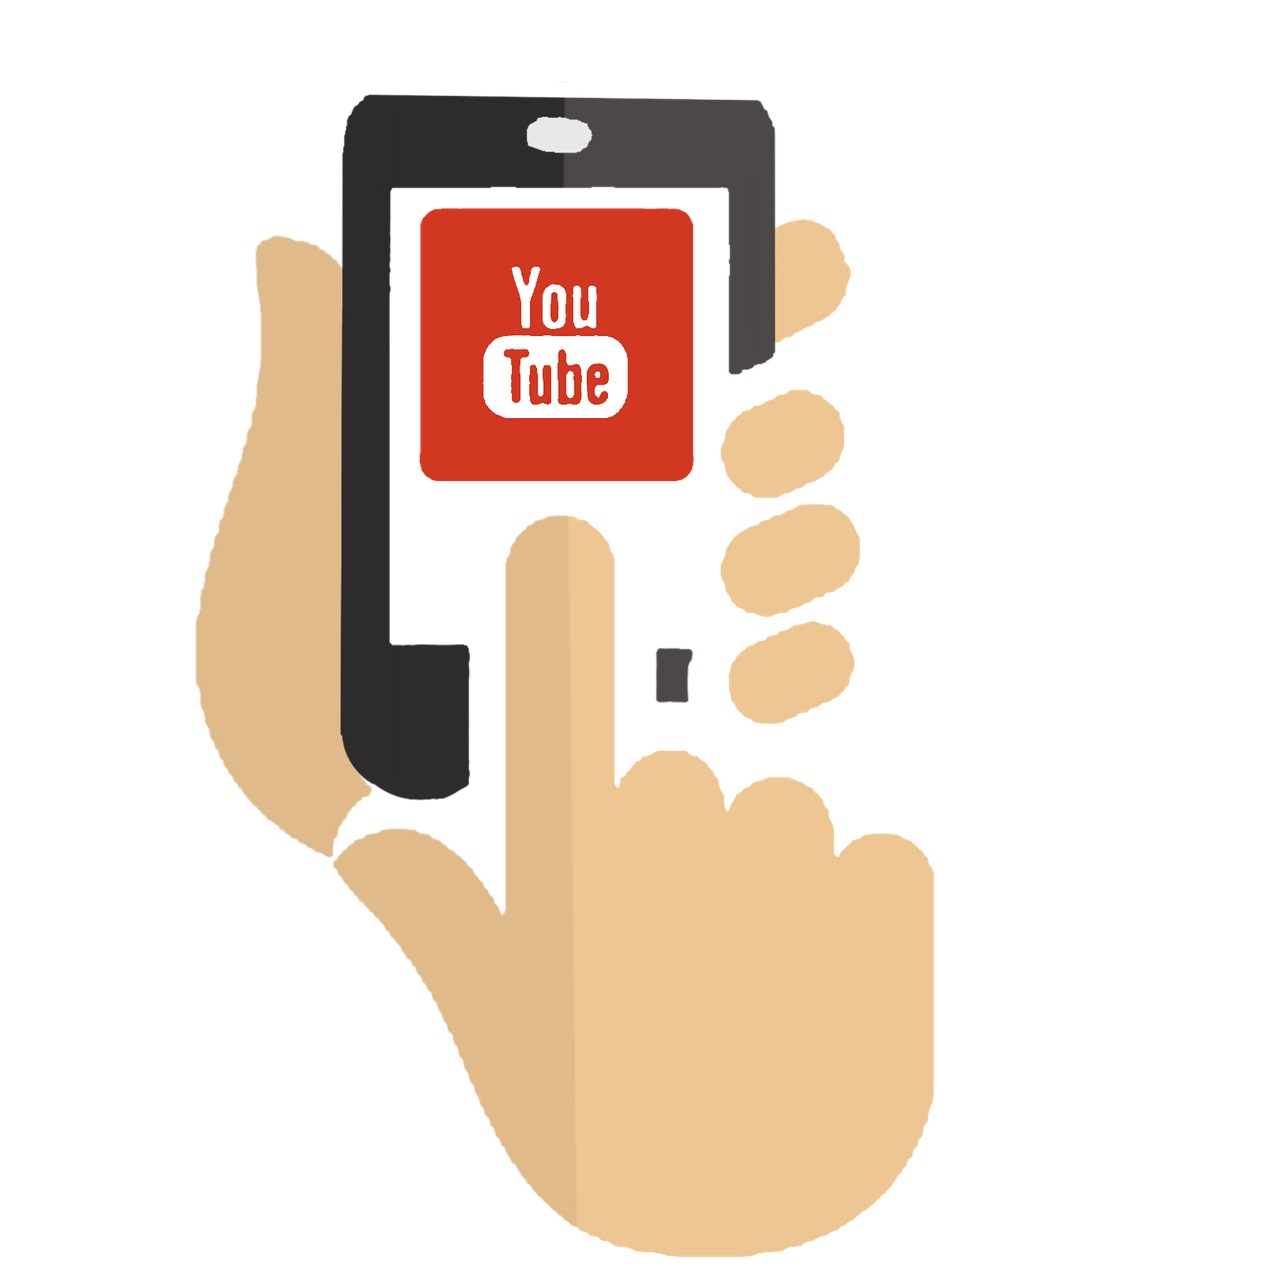 You Tube smartphone app